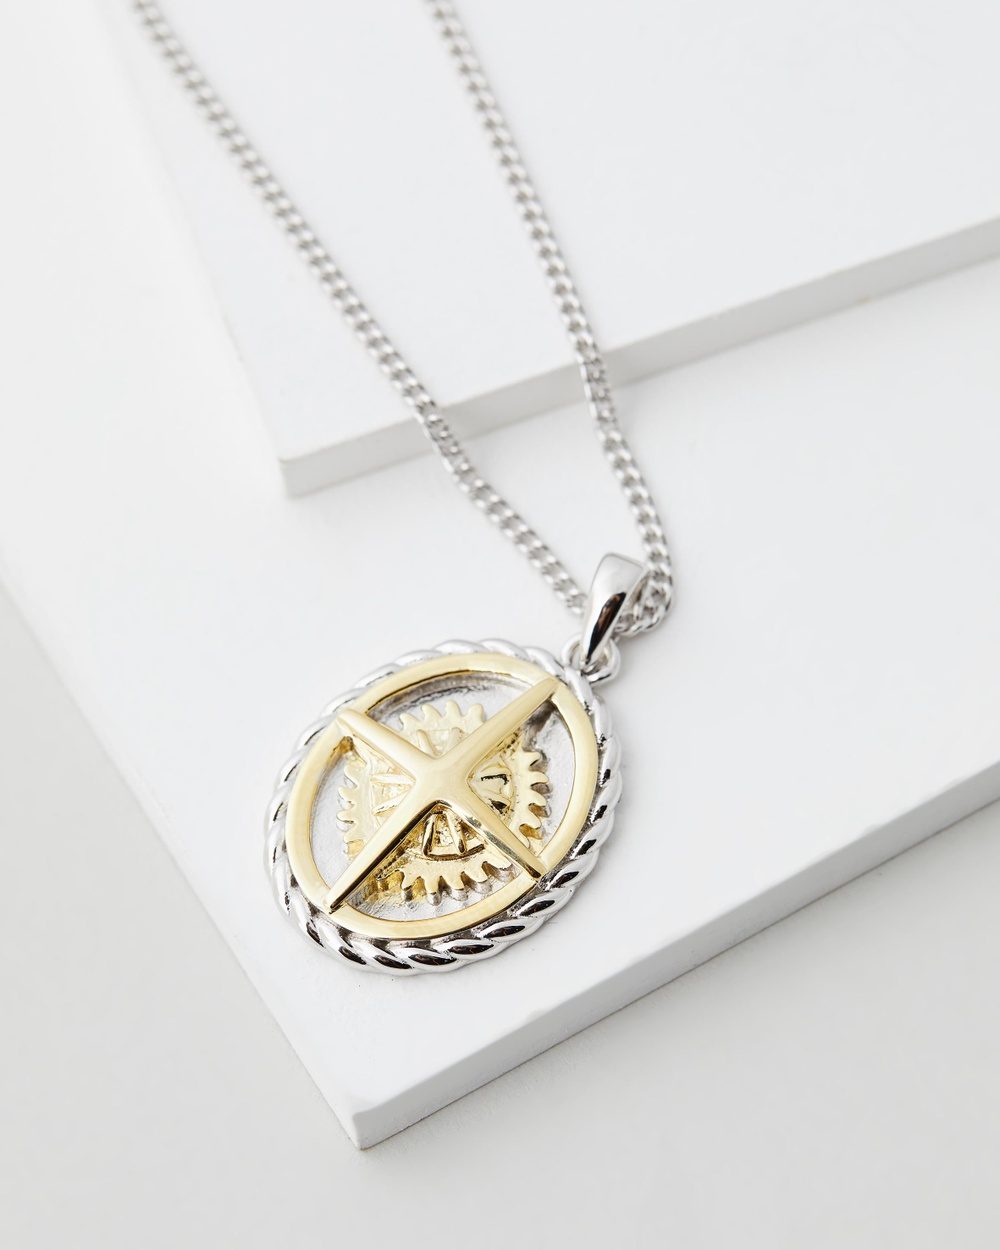 Serge DeNimes Two Tone Compass Necklace Jewellery Gold